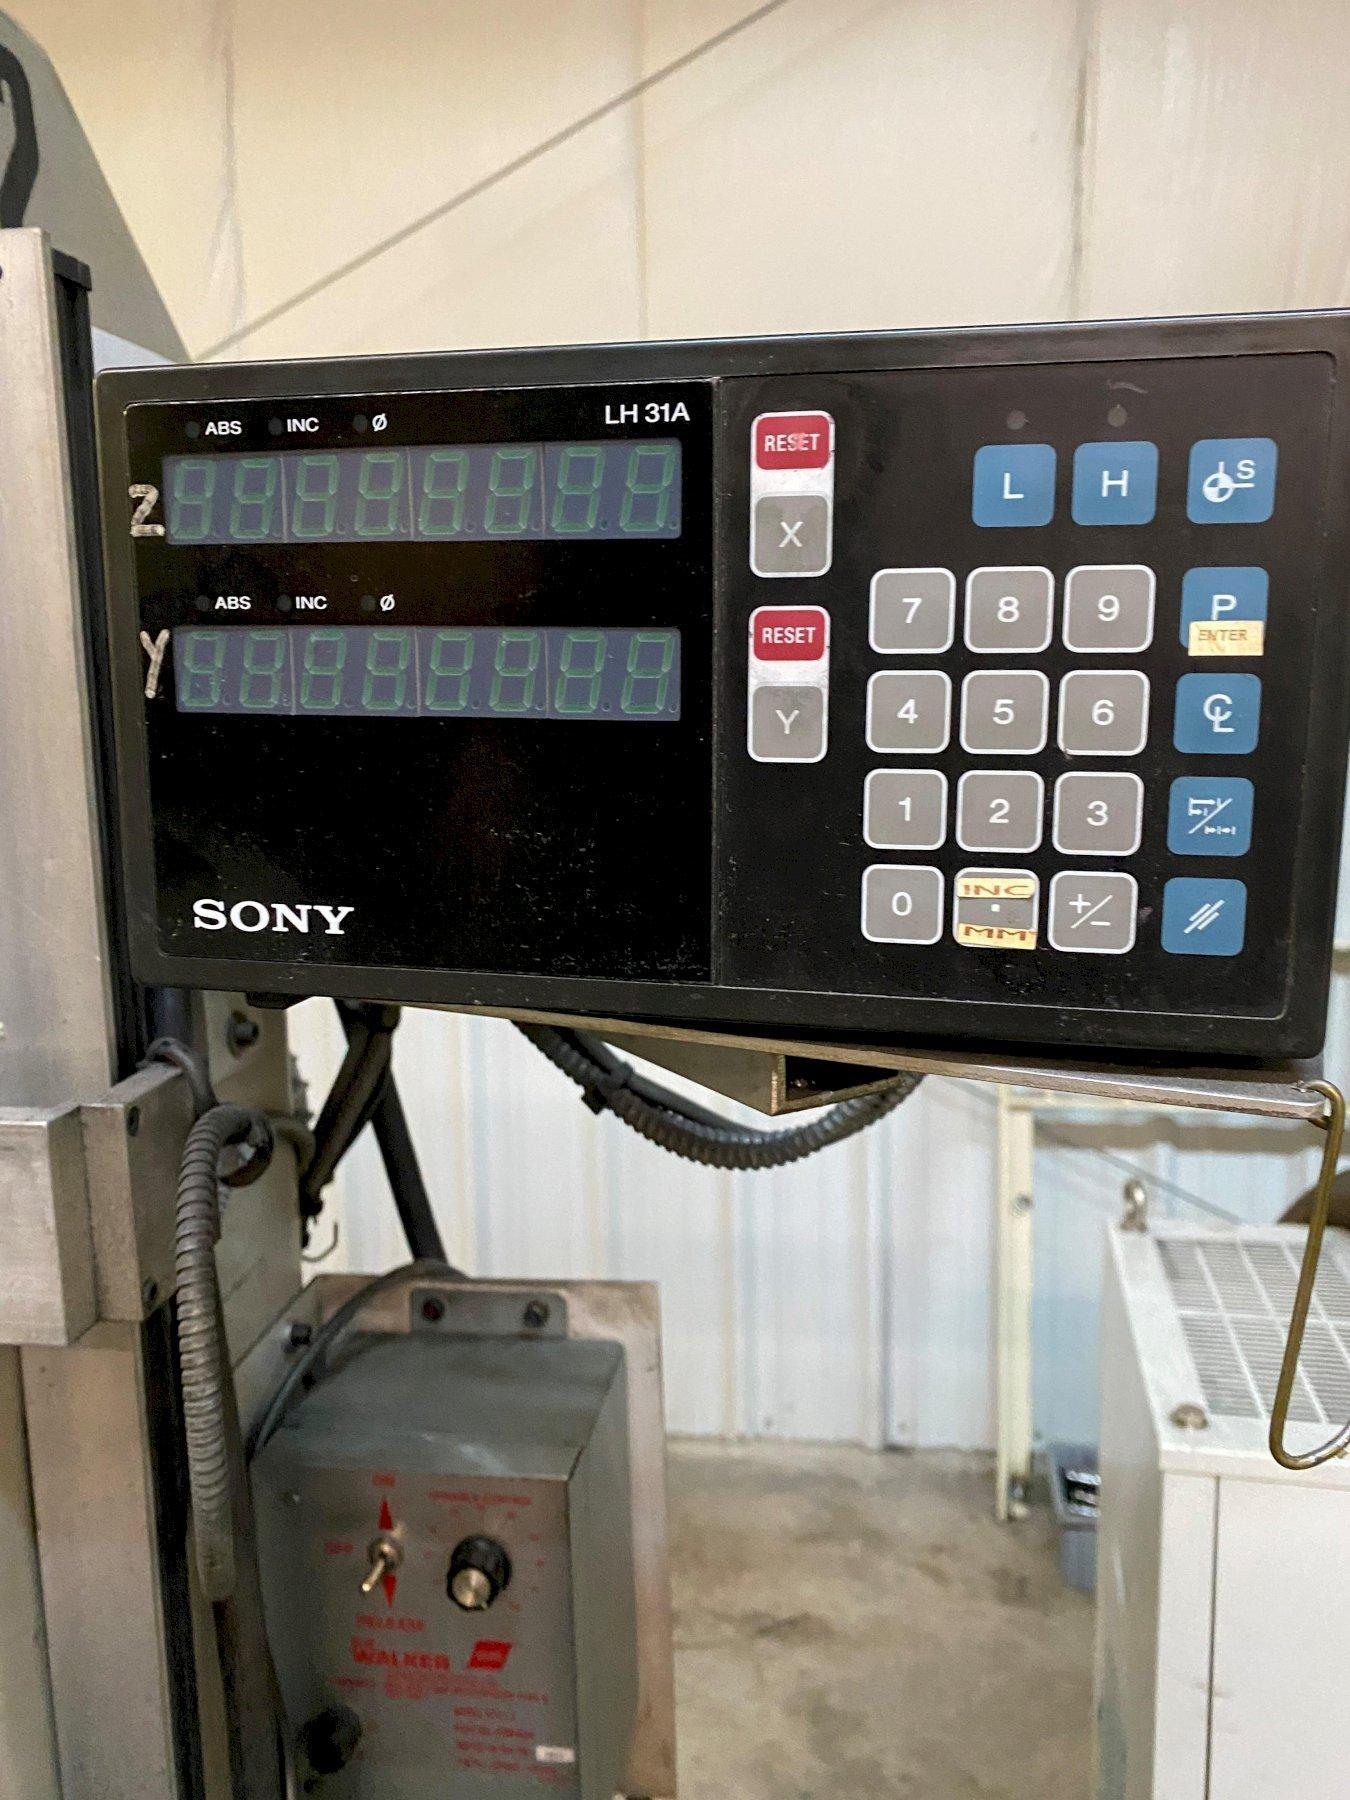 Okamoto Linear 6.12/14 Manual Surface Grinder w/ Sony LH31A 2-Axis Read Outs